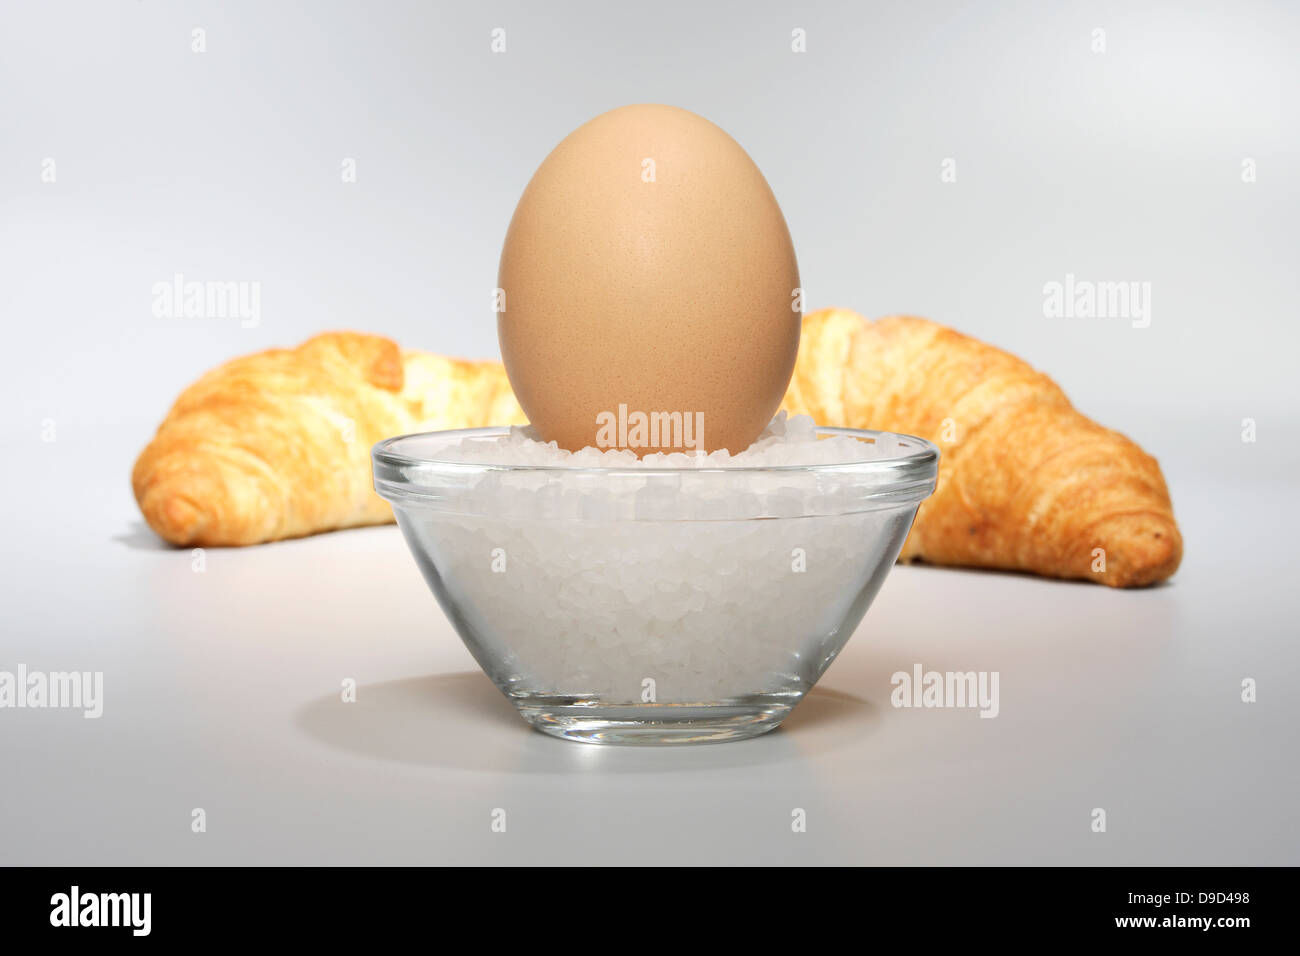 Oh with croissants - Stock Image